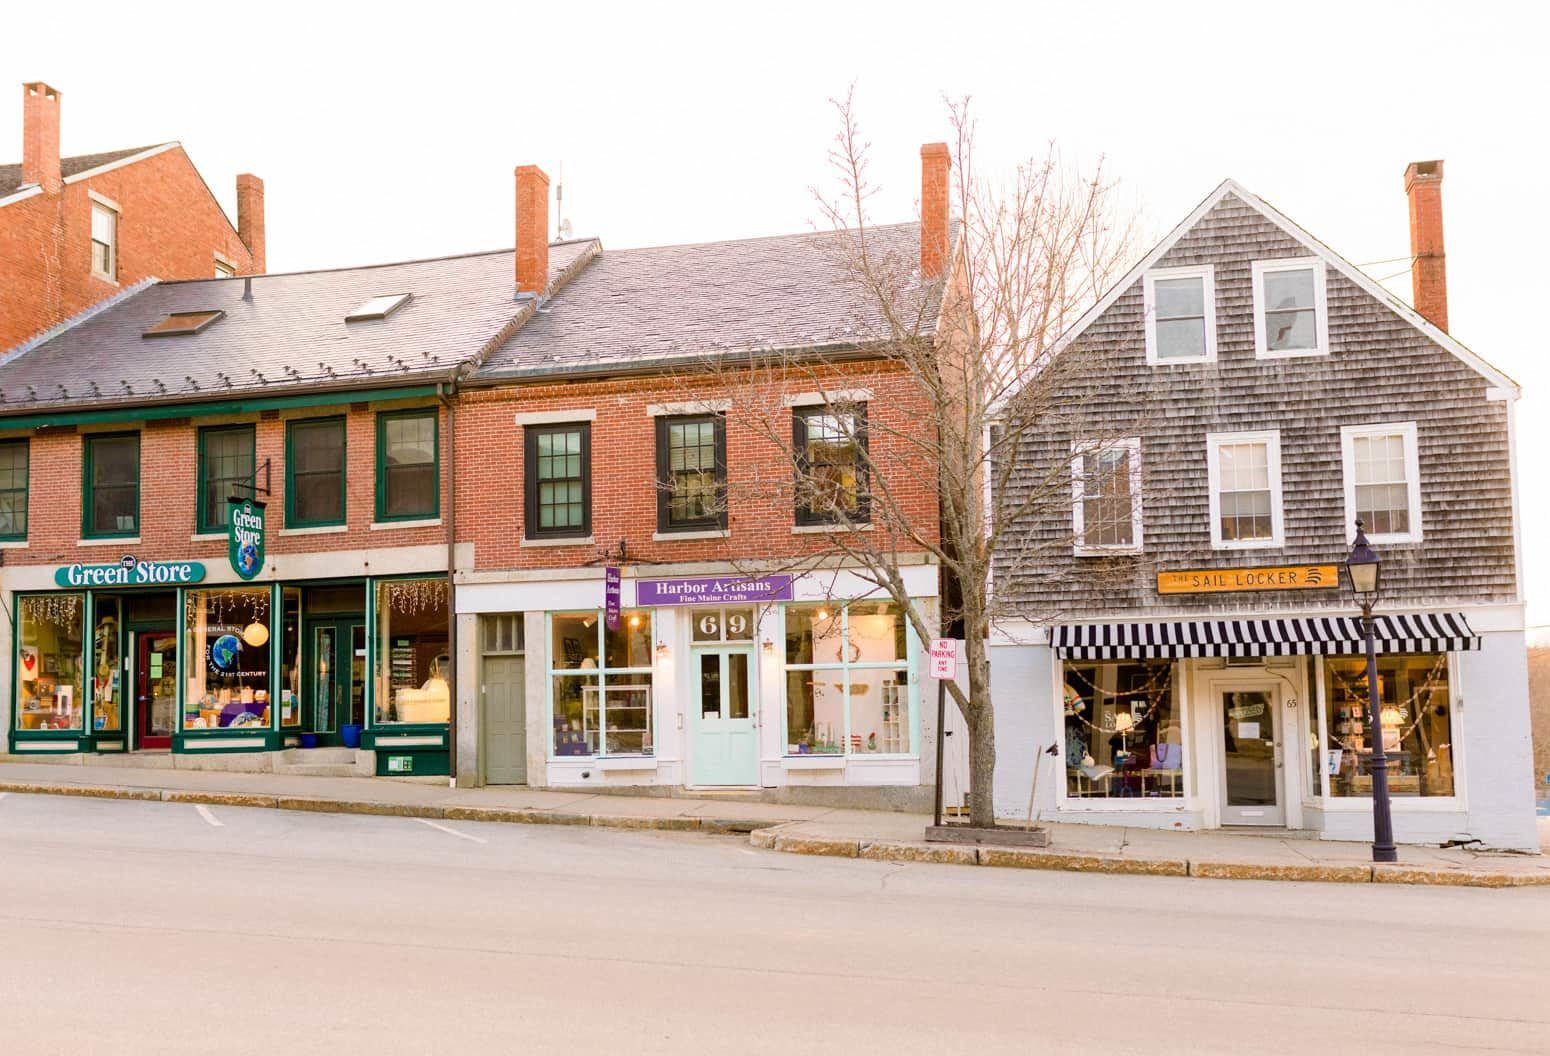 Downtown street view of Belfast, Maine